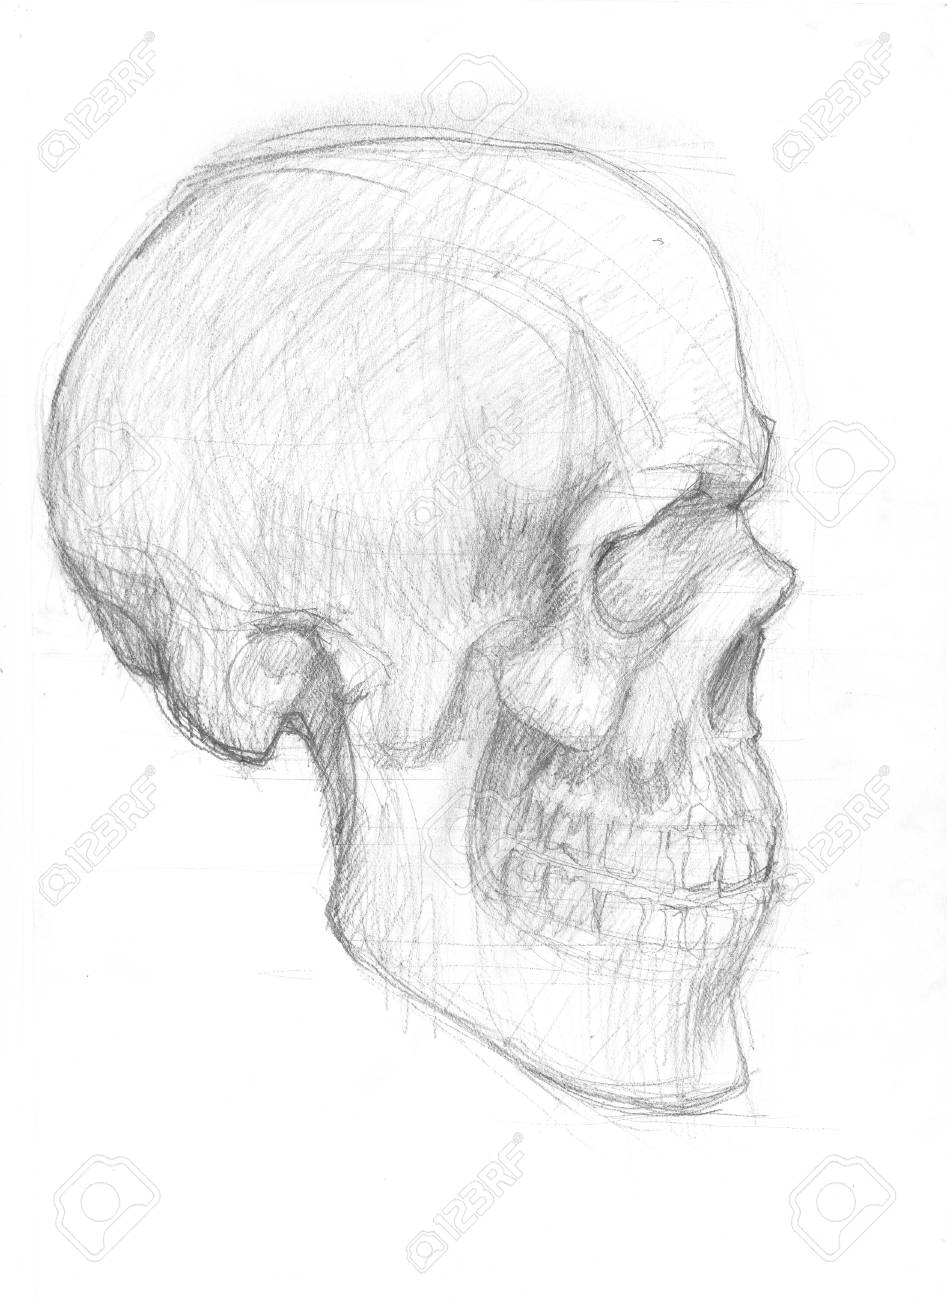 Hand drawn illustration of a human skull original artistic pencil sketch on paper lateral